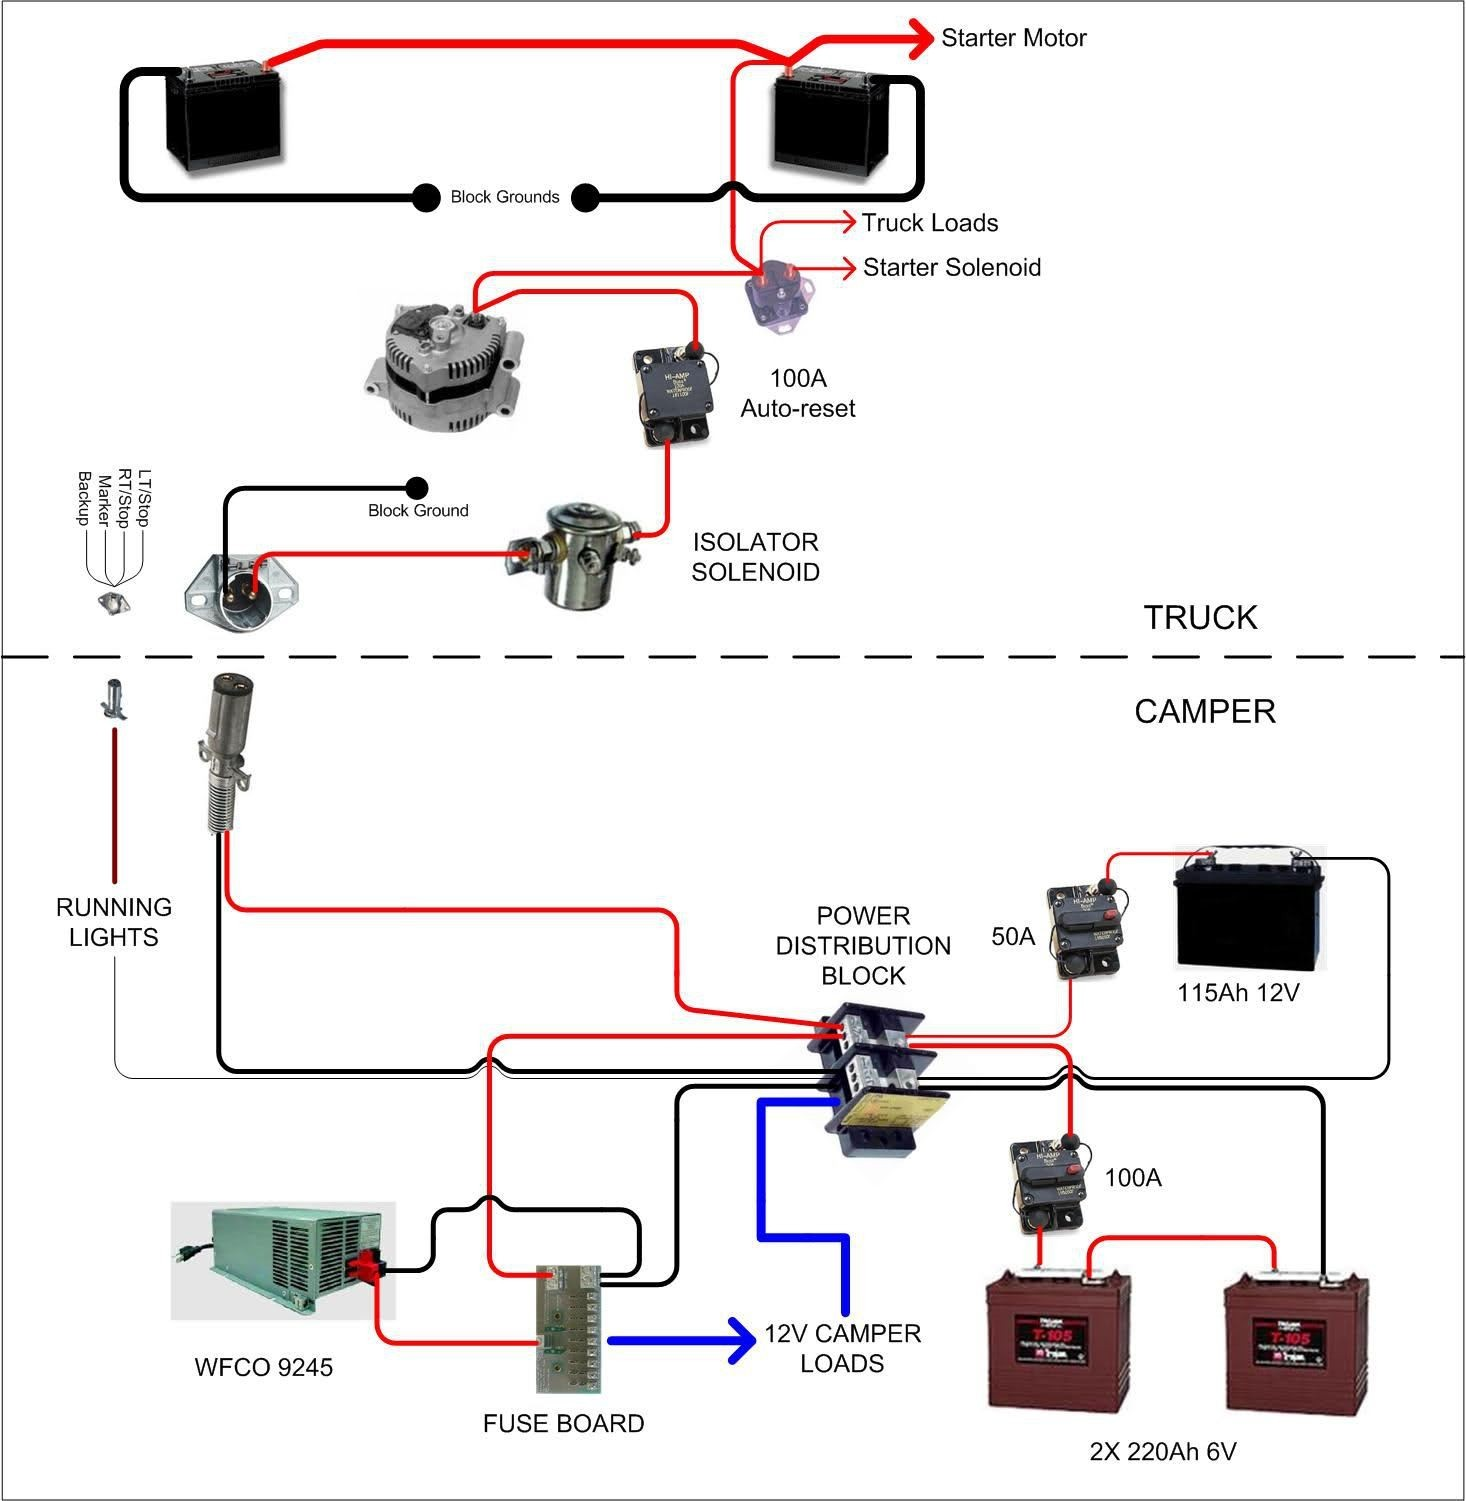 hight resolution of camper wiring harness diagram wiring diagram loadstarcraft wiring harness wiring diagram paper camper wiring harness diagram